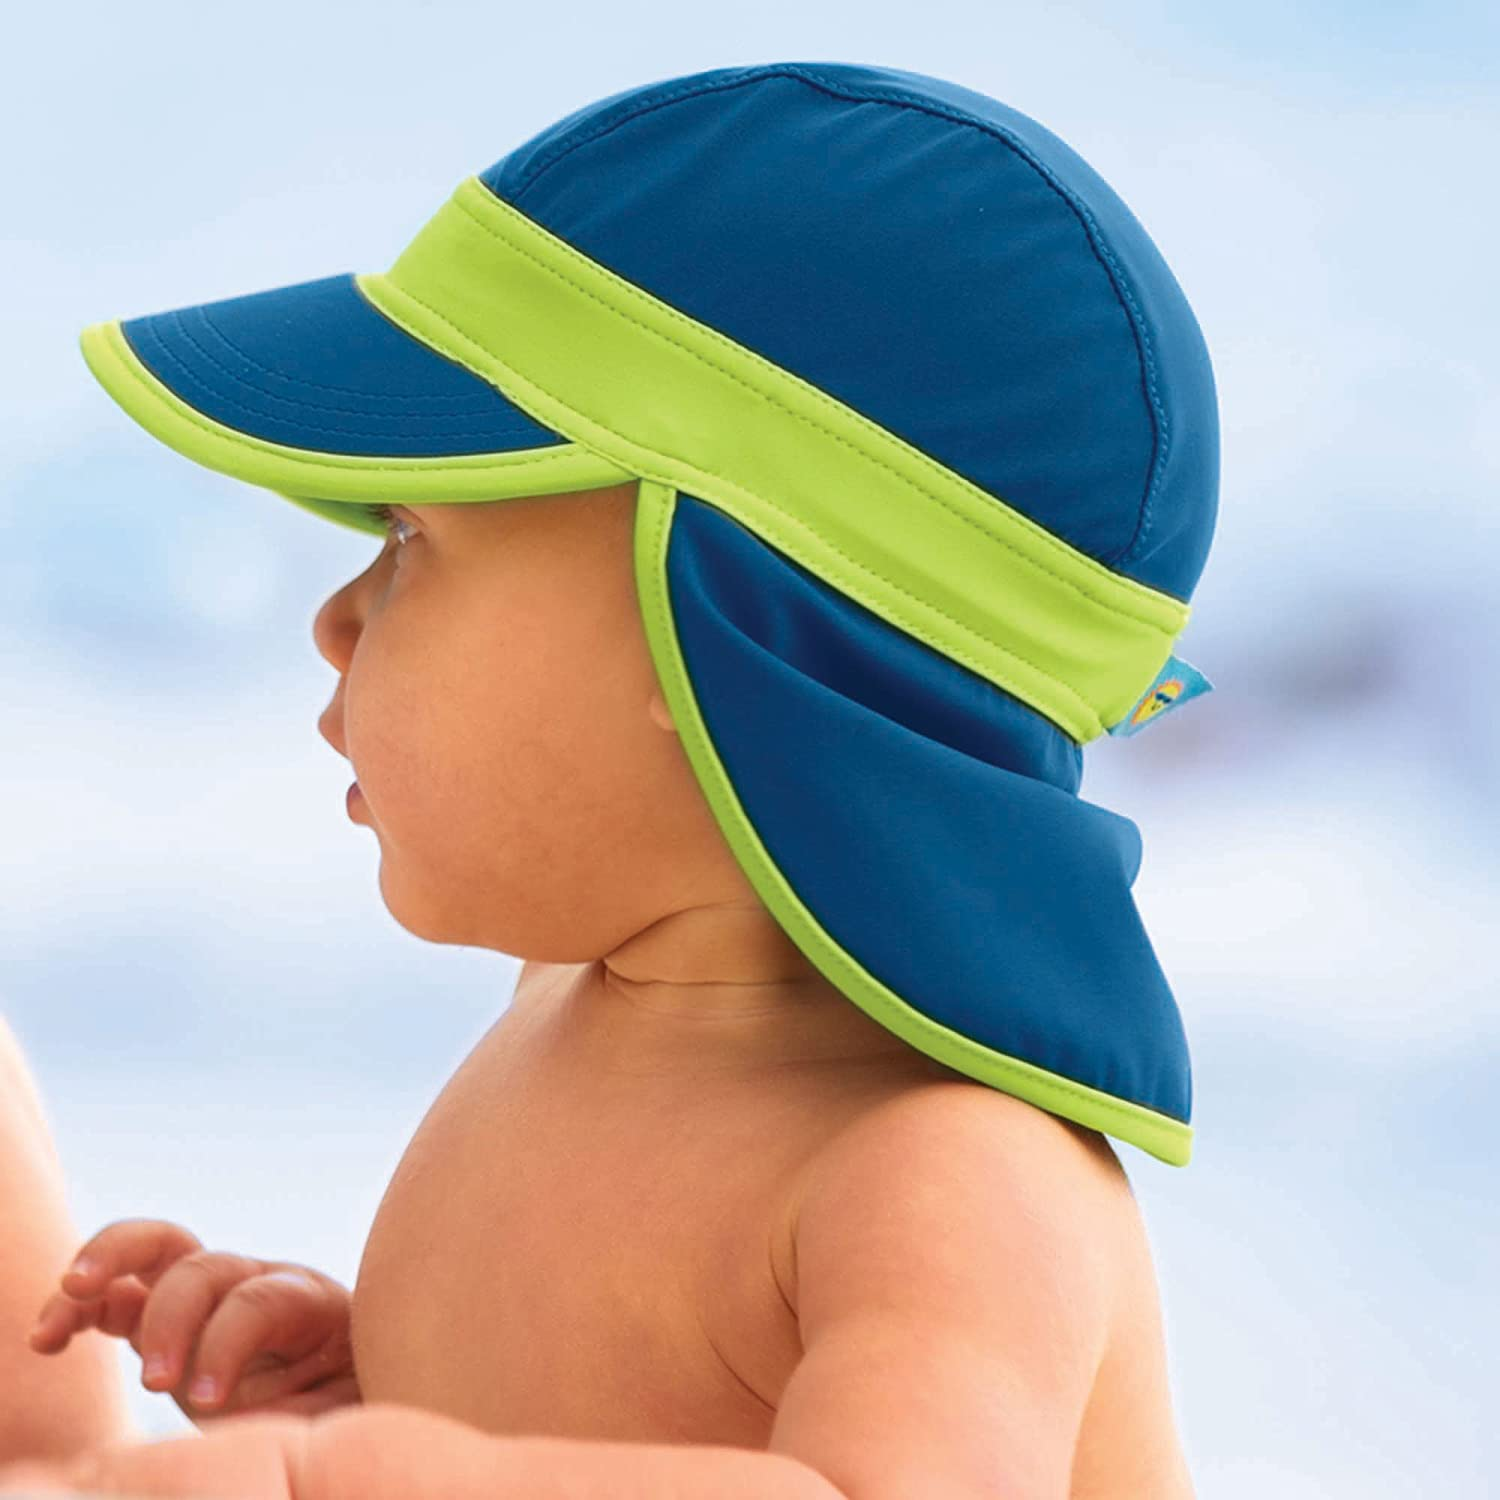 d495484ef24 Amazon.com  Navy Blue Baby Sun Hat with UPF50 Sun Protection by Sun Smarties